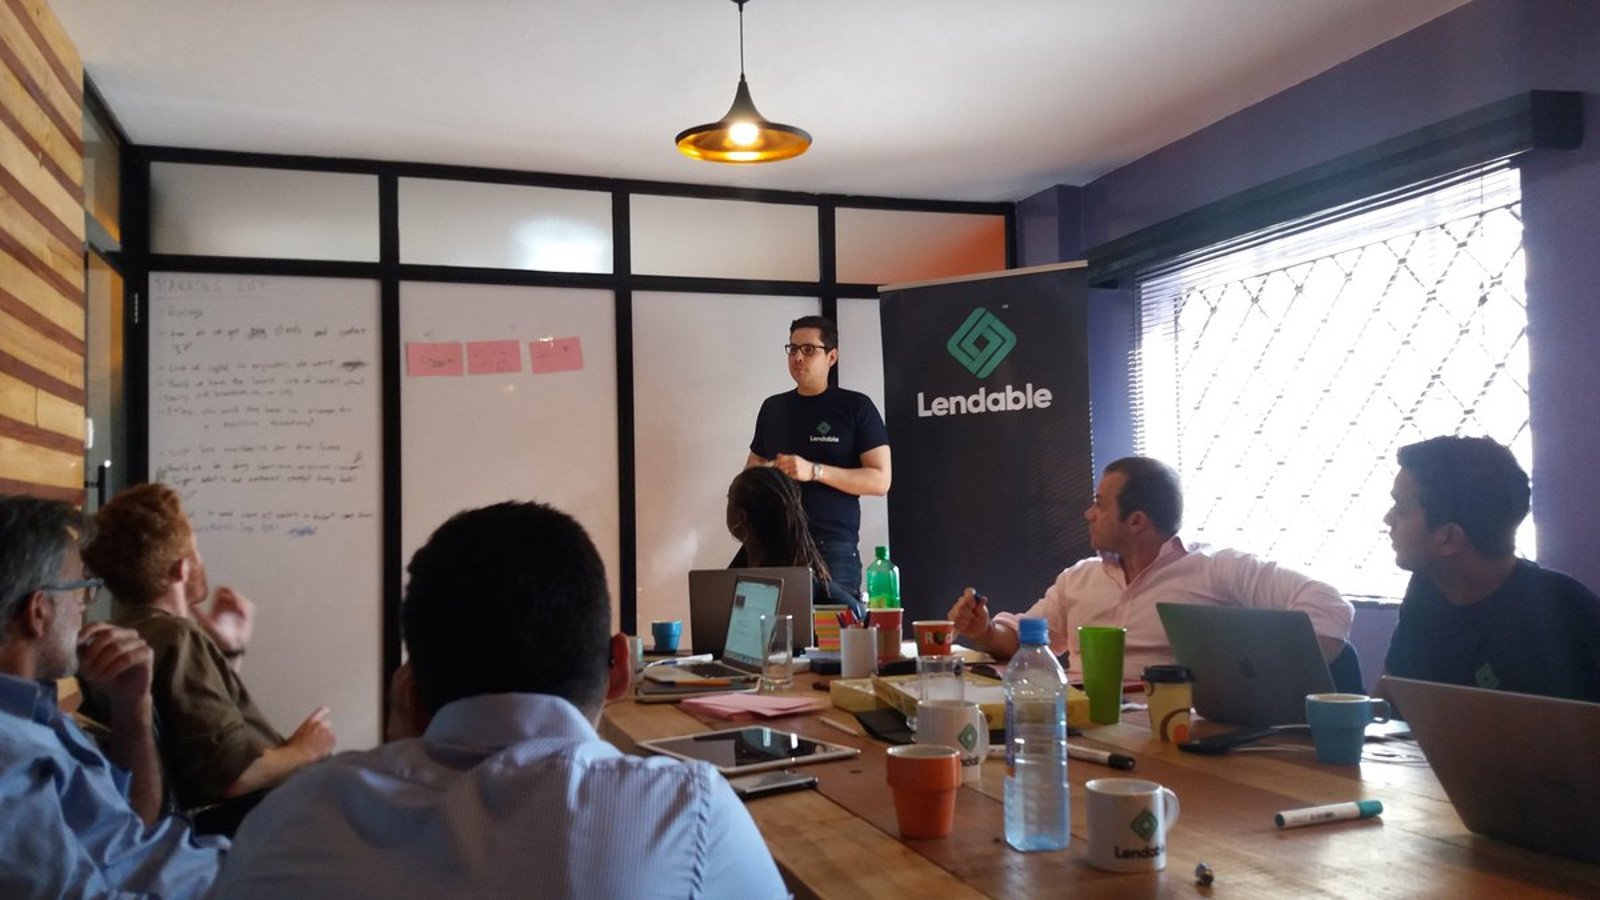 Featured image: Lendable CEO and co-founder Daniel Goldfarb in a board meeting last year (Daniel Goldfarb via Twitter)